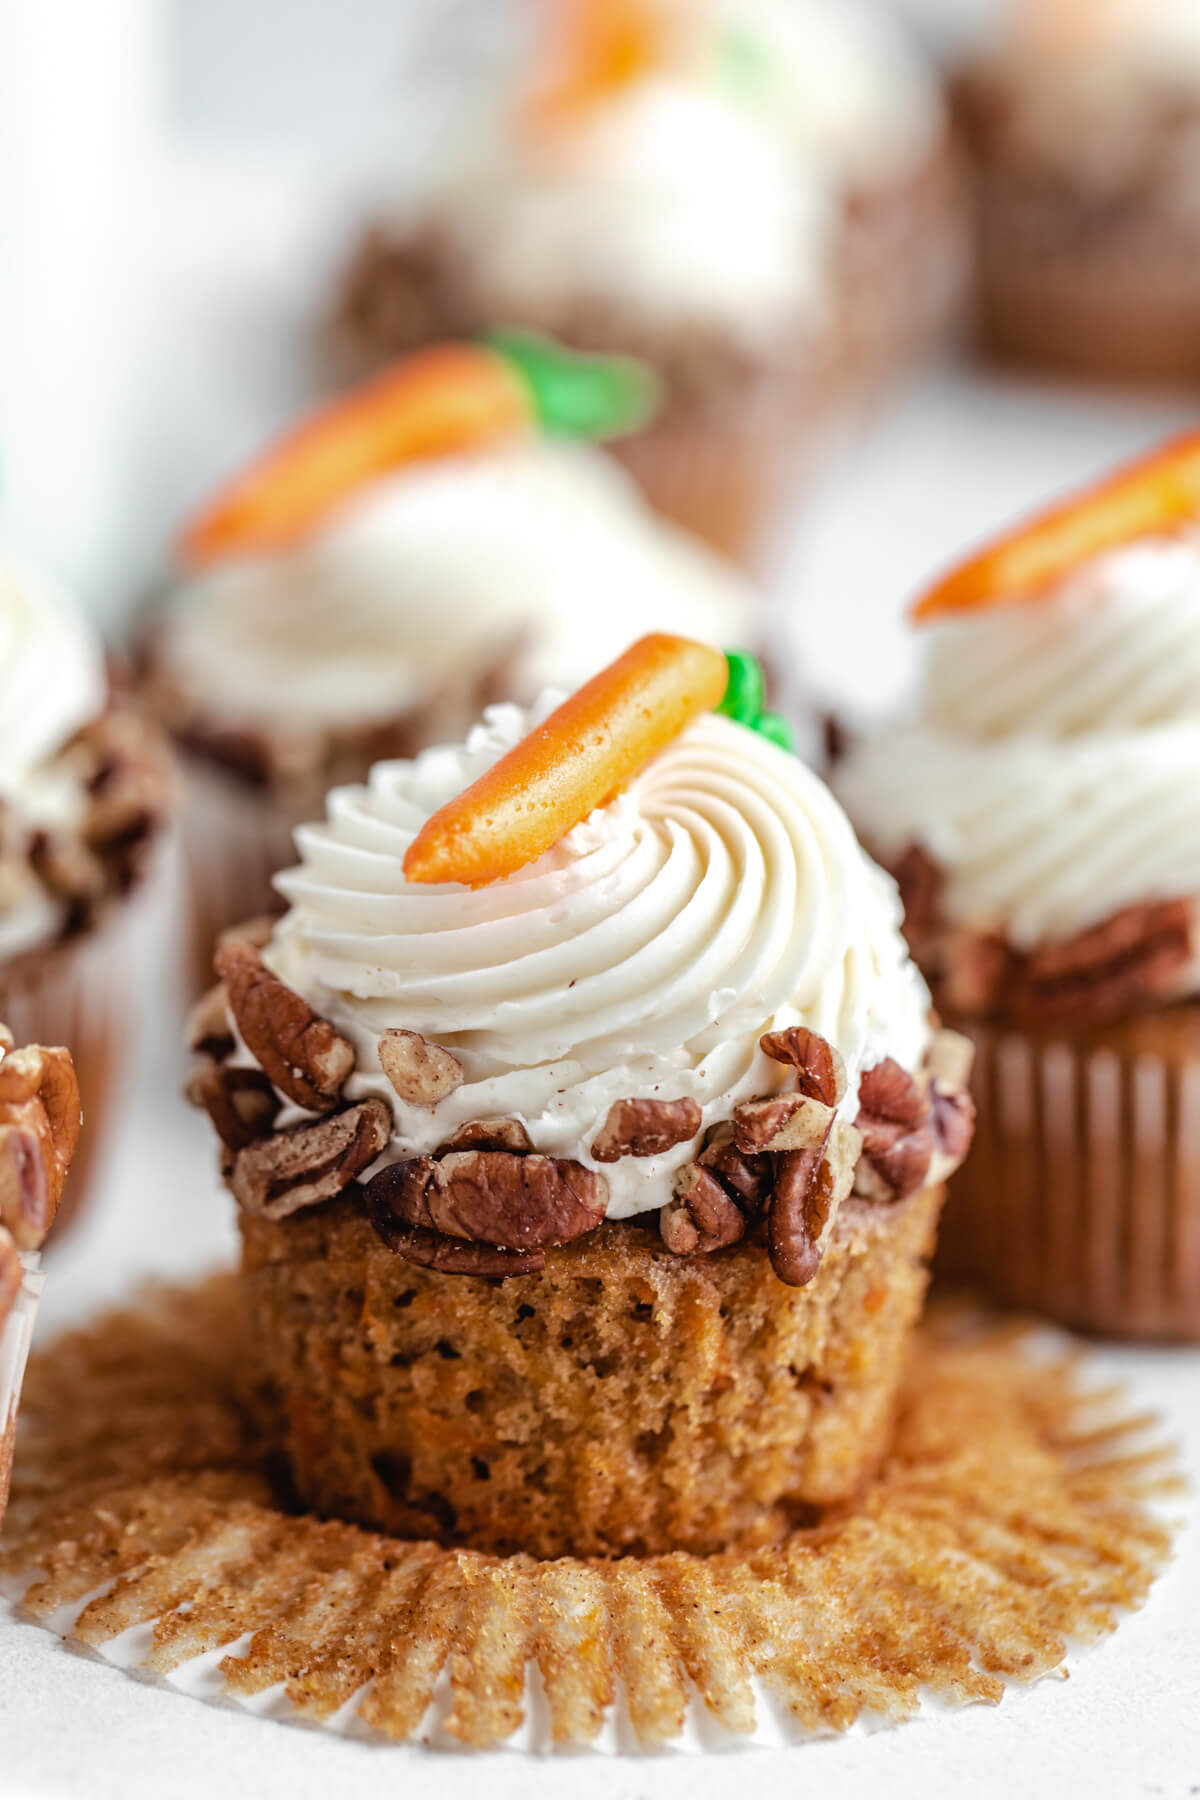 close up of unwrapped carrot cupcake